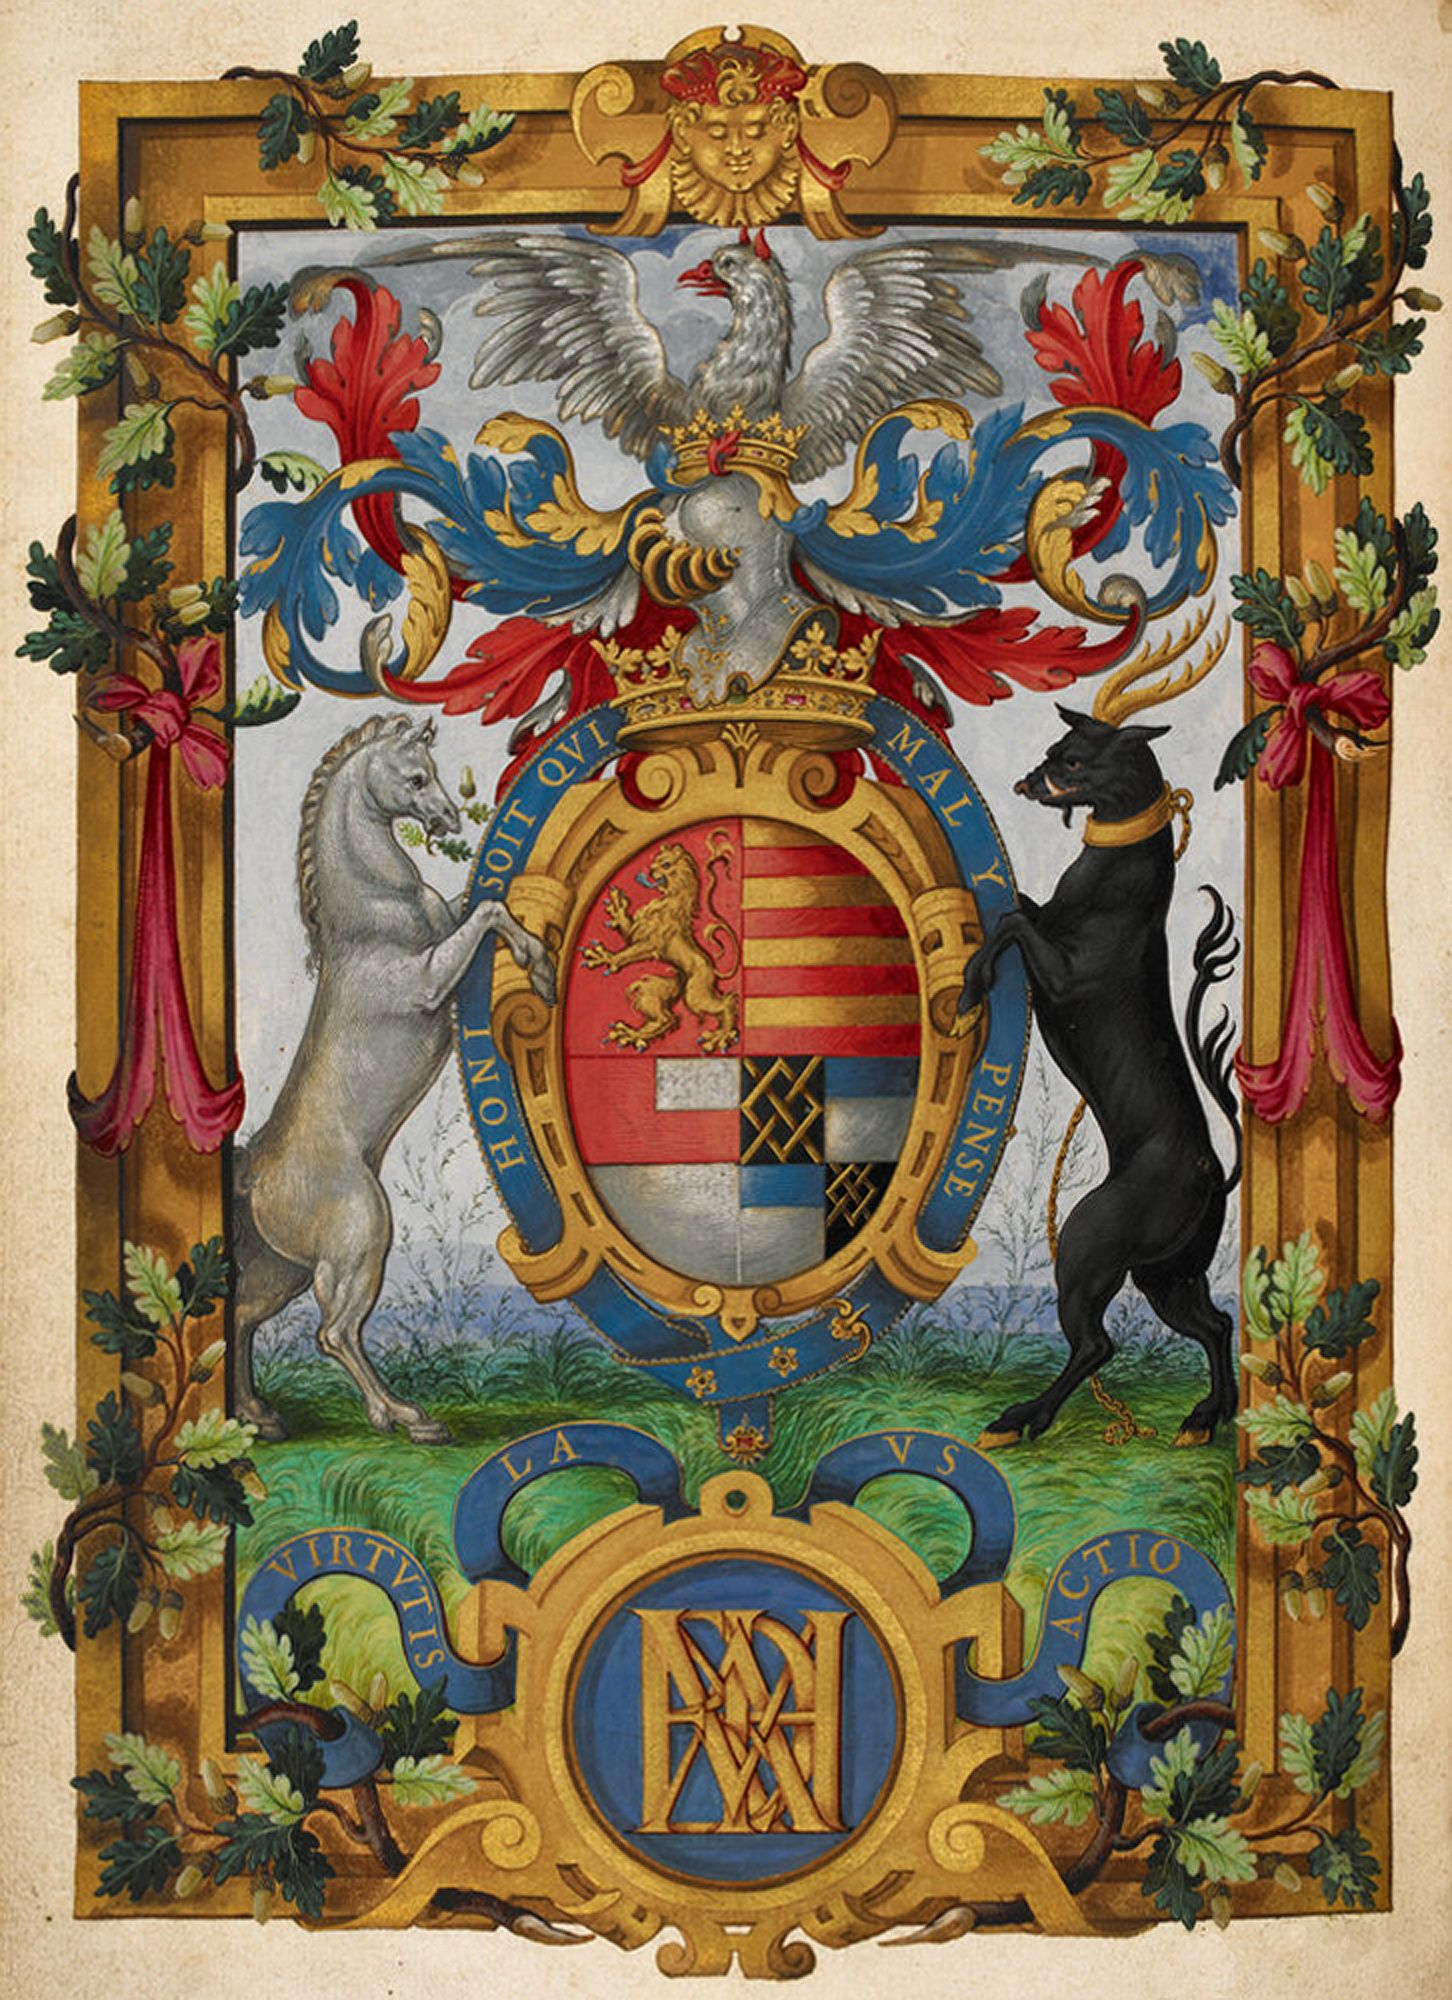 The arms of Henry Fitzalan, Earl of Arundel, from The Psalter of the Earl of Arundel (London, 1565).